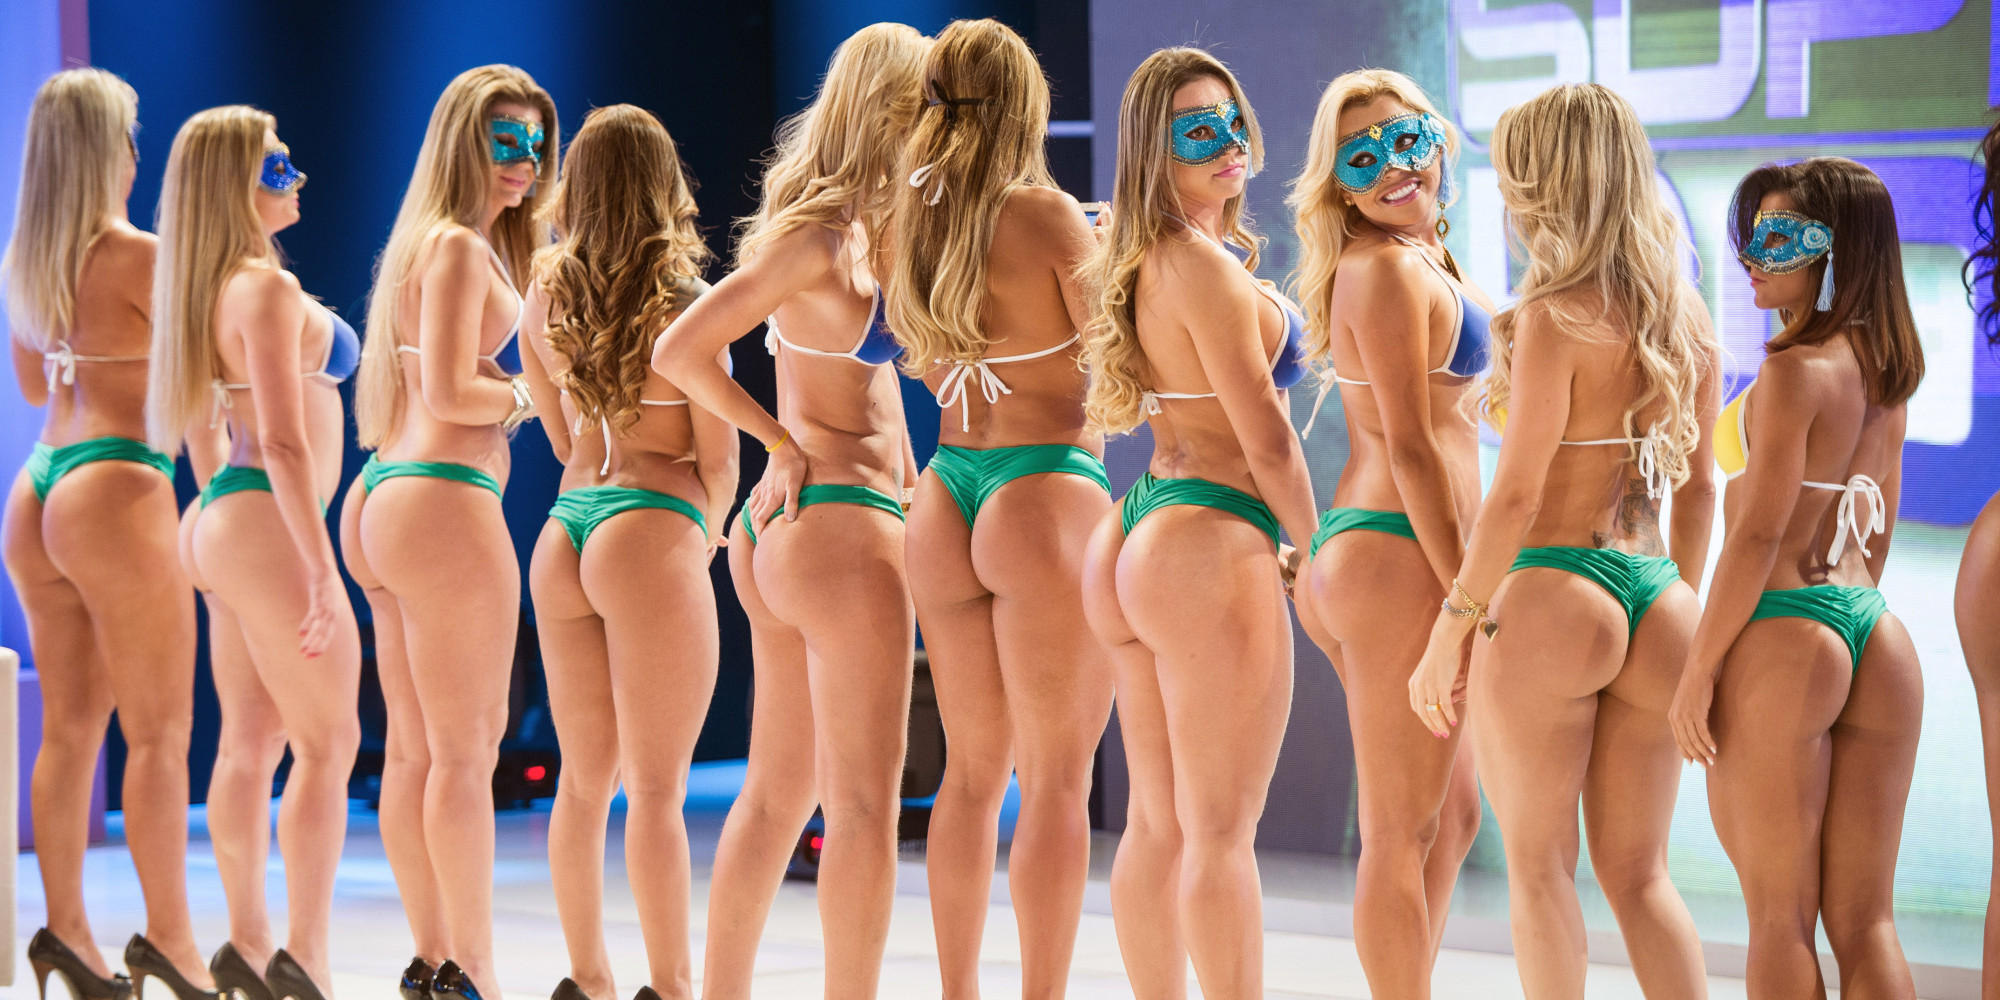 Miss Bumbum 2014 Contestants Hope To Have Brazils Best Butt  HuffPost